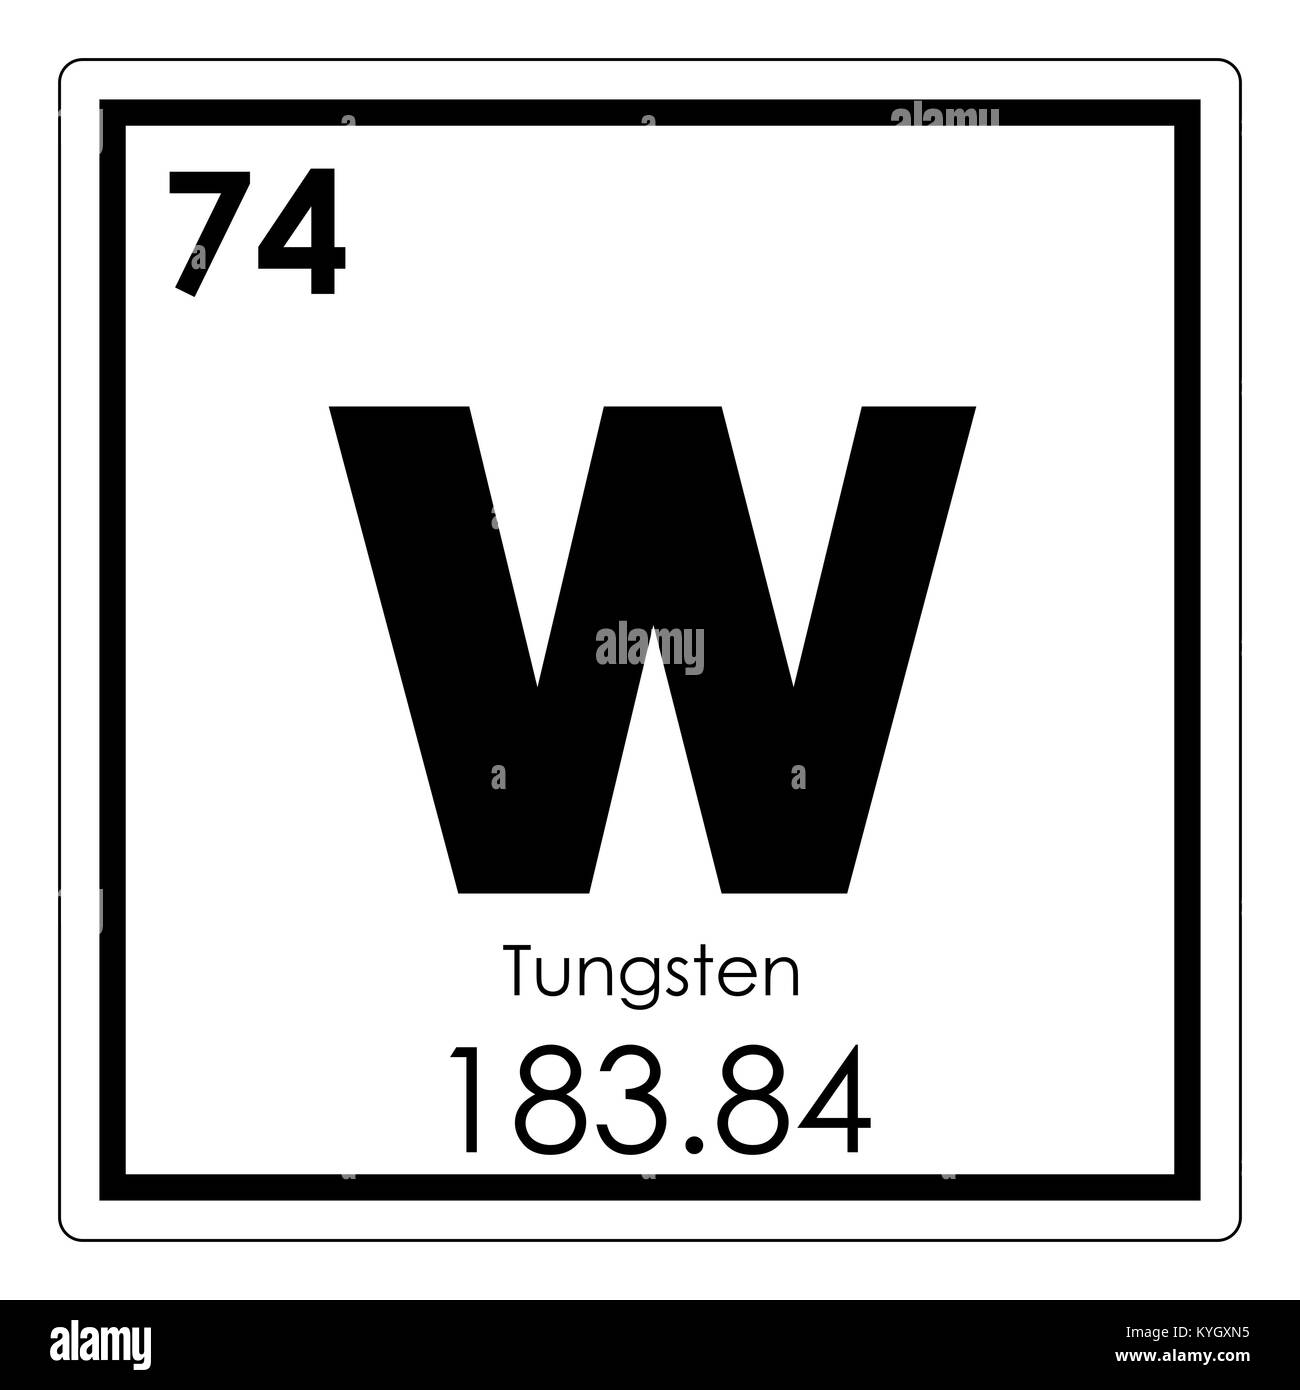 Tungsten chemical element periodic table science symbol stock photo tungsten chemical element periodic table science symbol urtaz Images